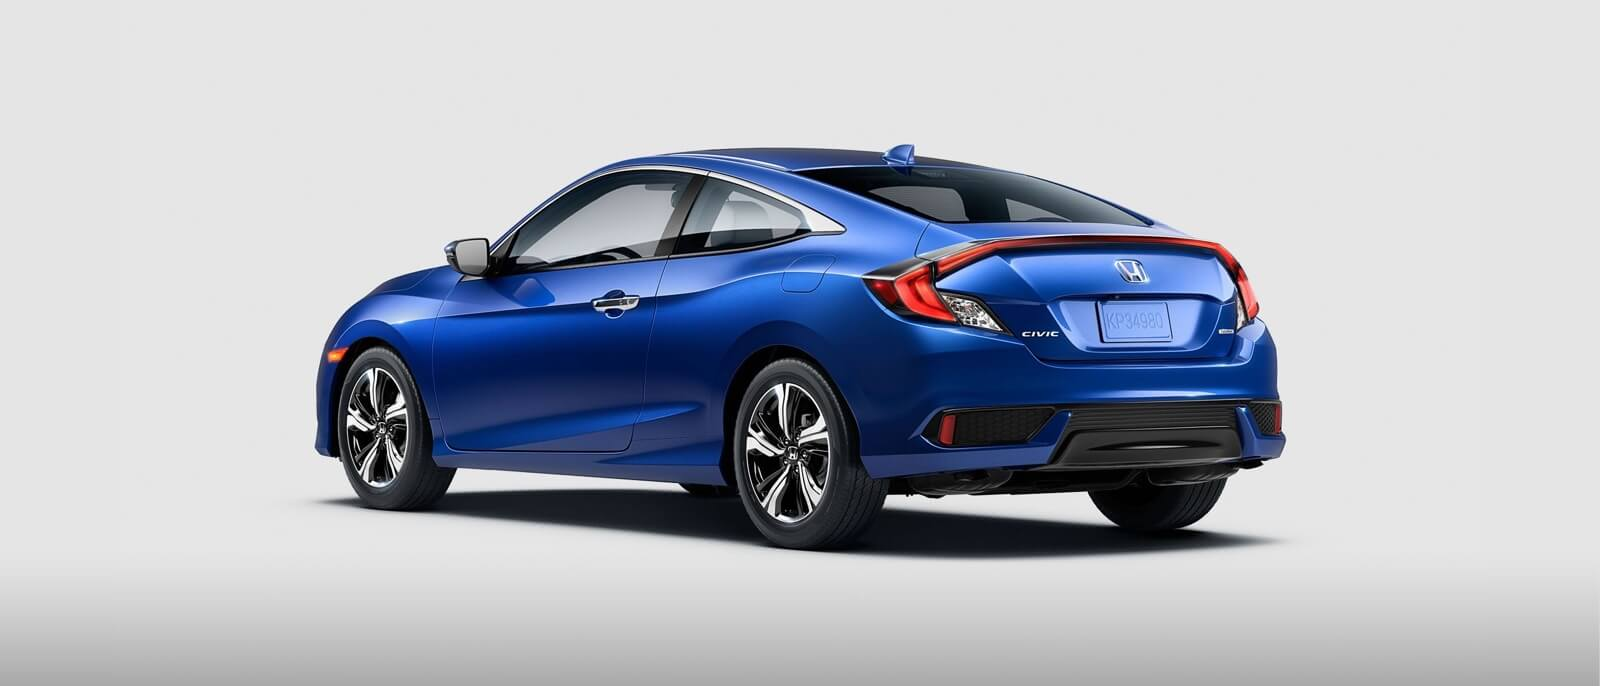 2016 Honda Civic Coupe rear view